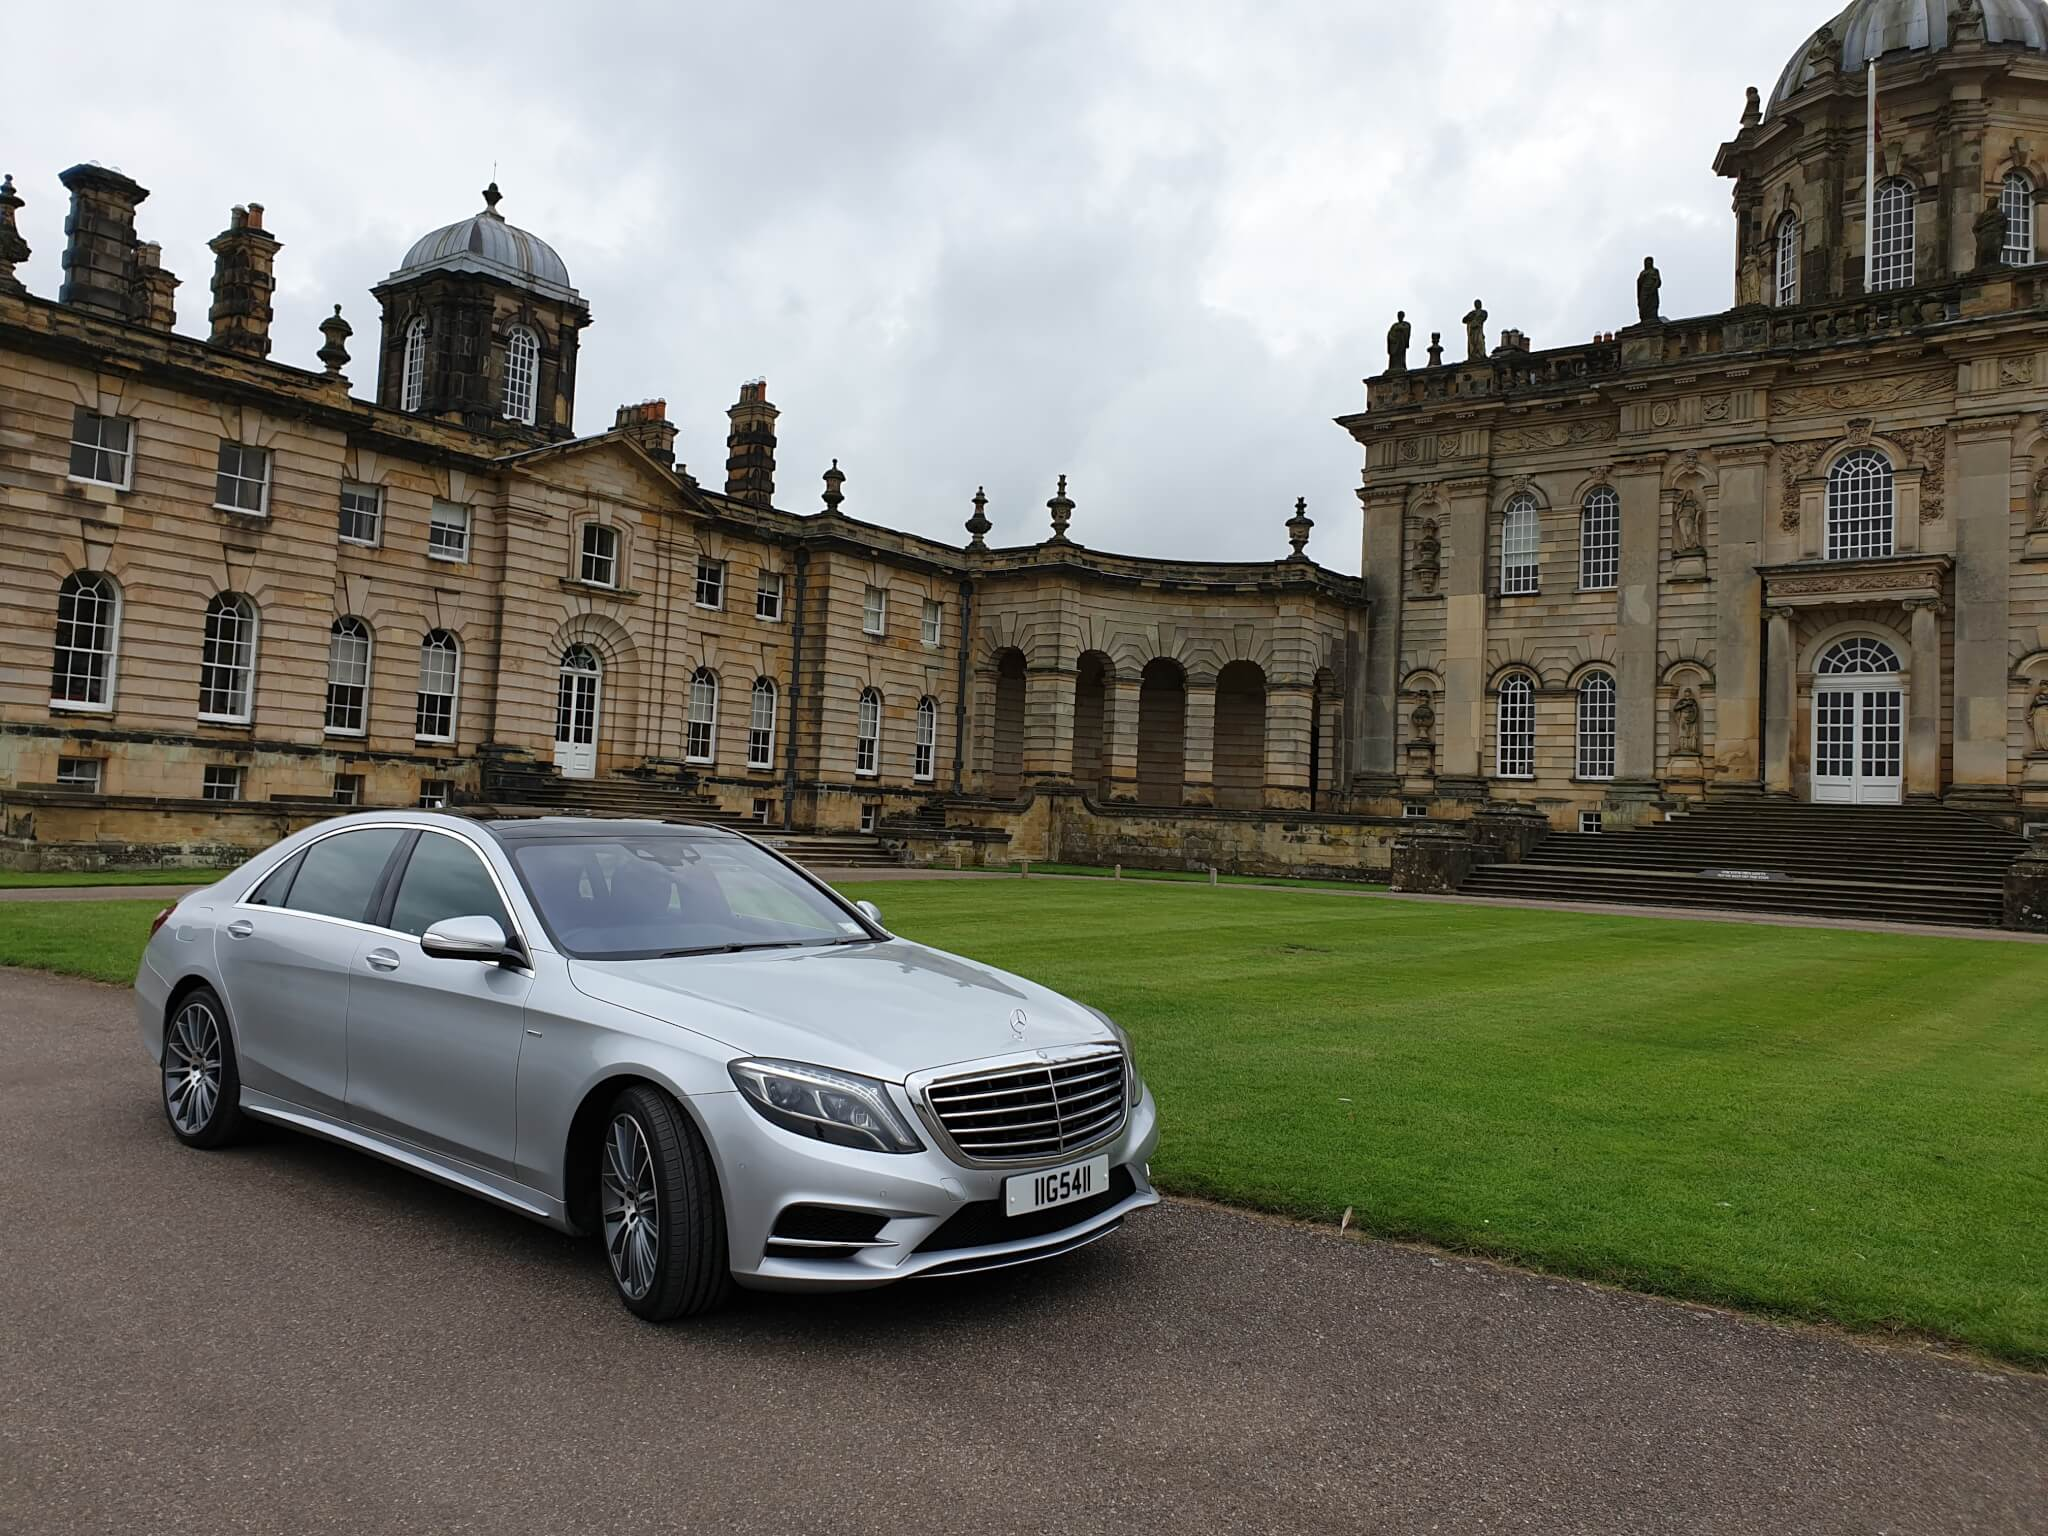 Our 2018 Mercedes s class at Castle Howard